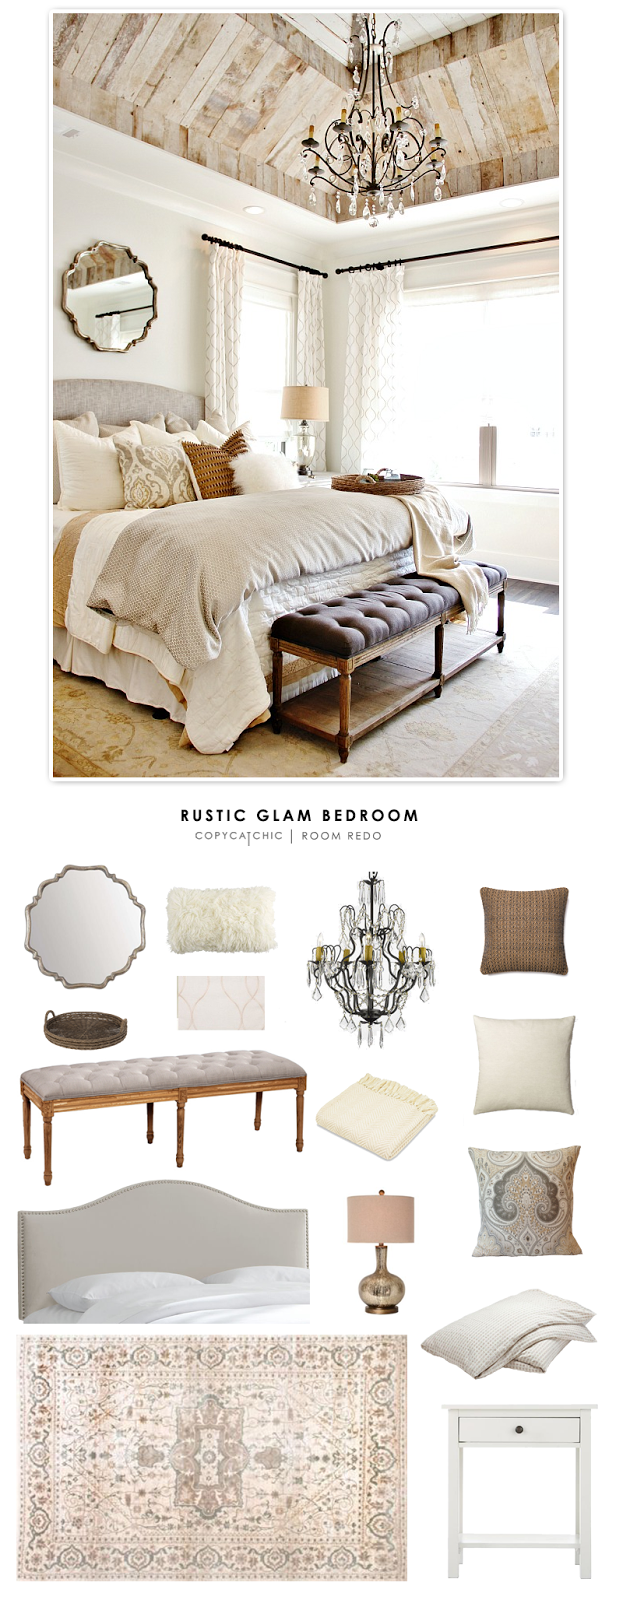 Rustic Glam Bedroom For Less- Copycatchic